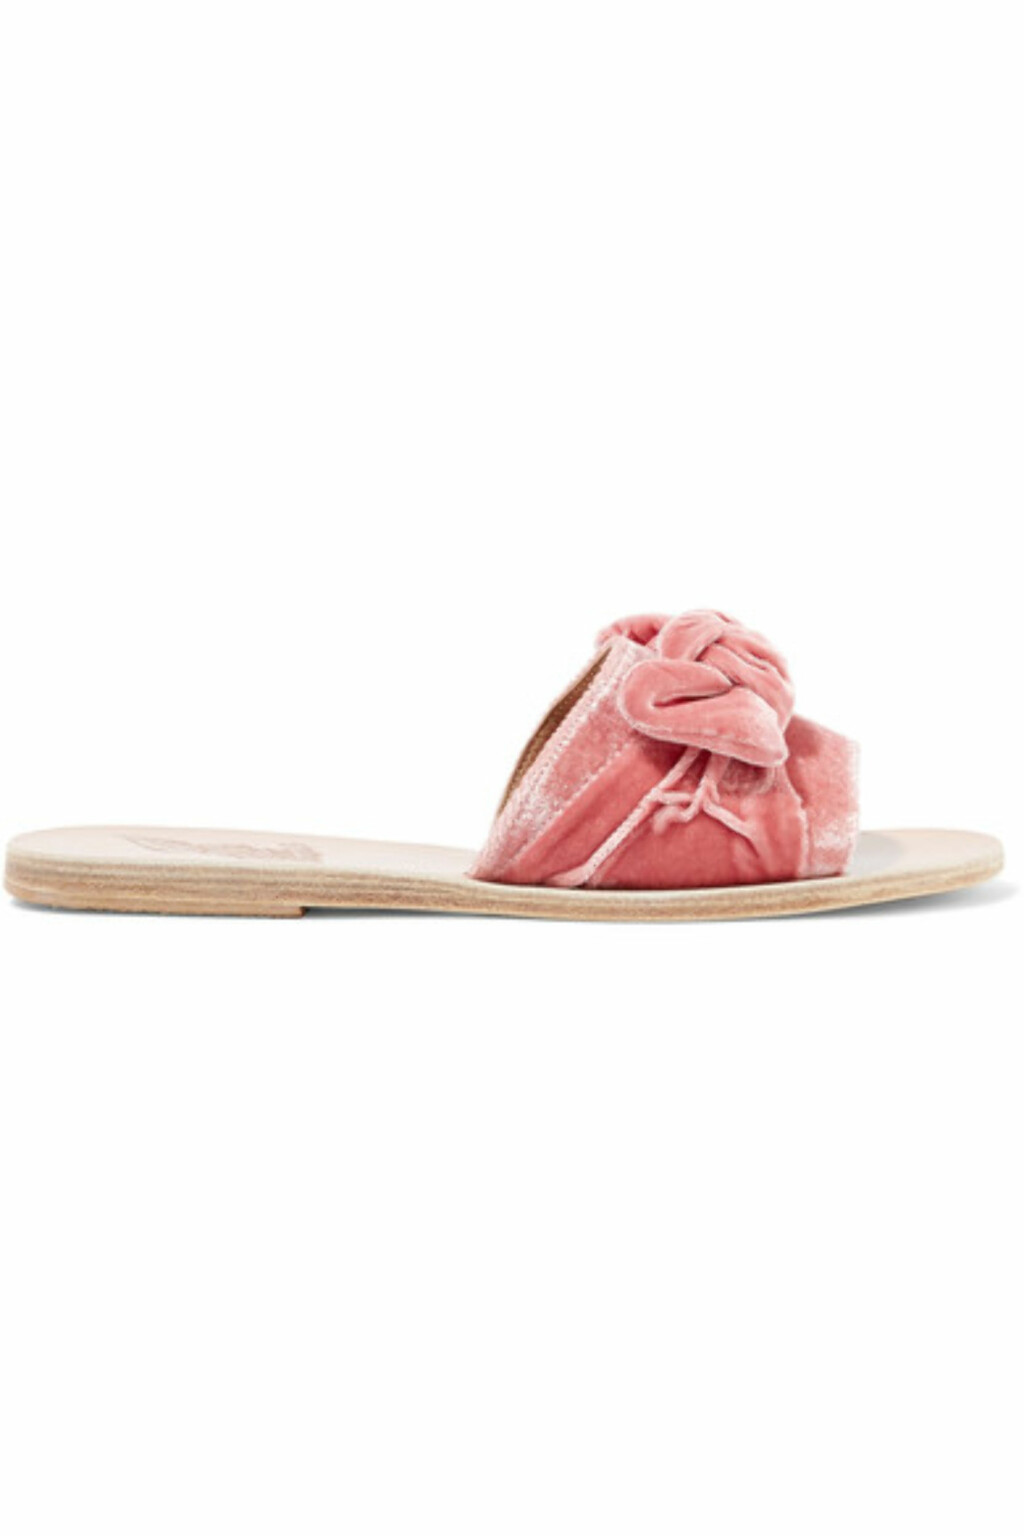 Sandaler fra Ancient Greek Sandals via Net-a-porter.com | kr 1767